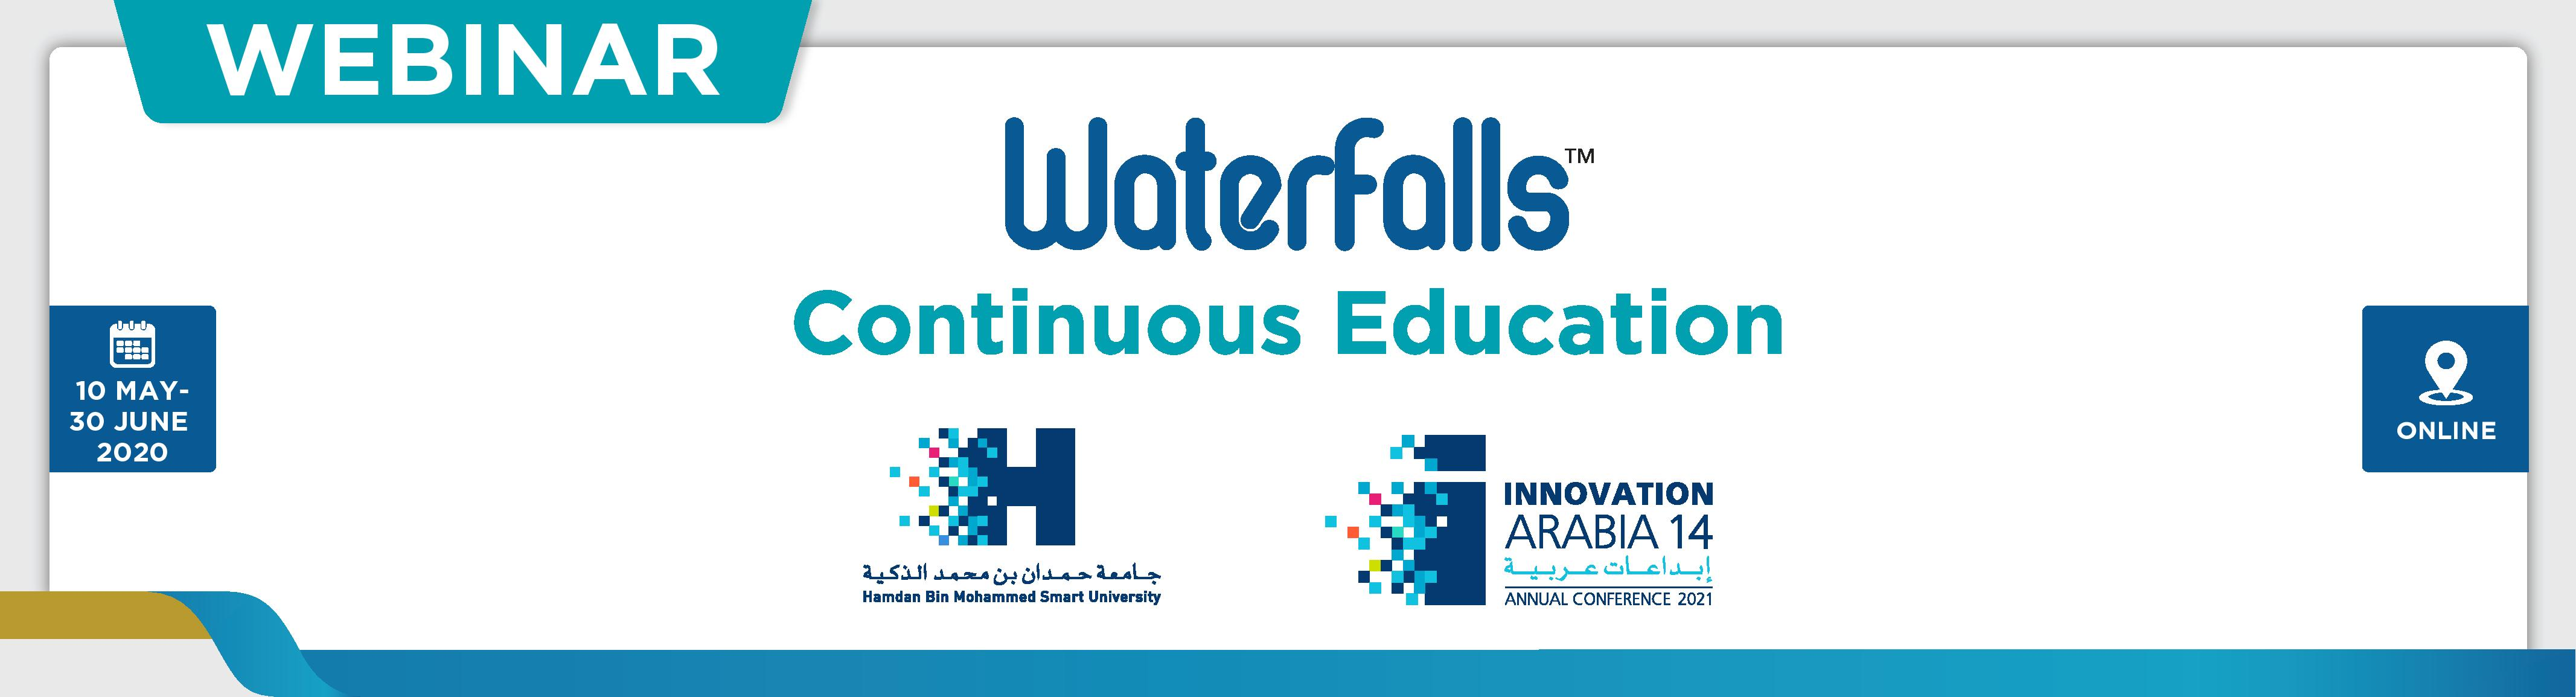 Waterfalls Webinar- HBMSU (21st May)